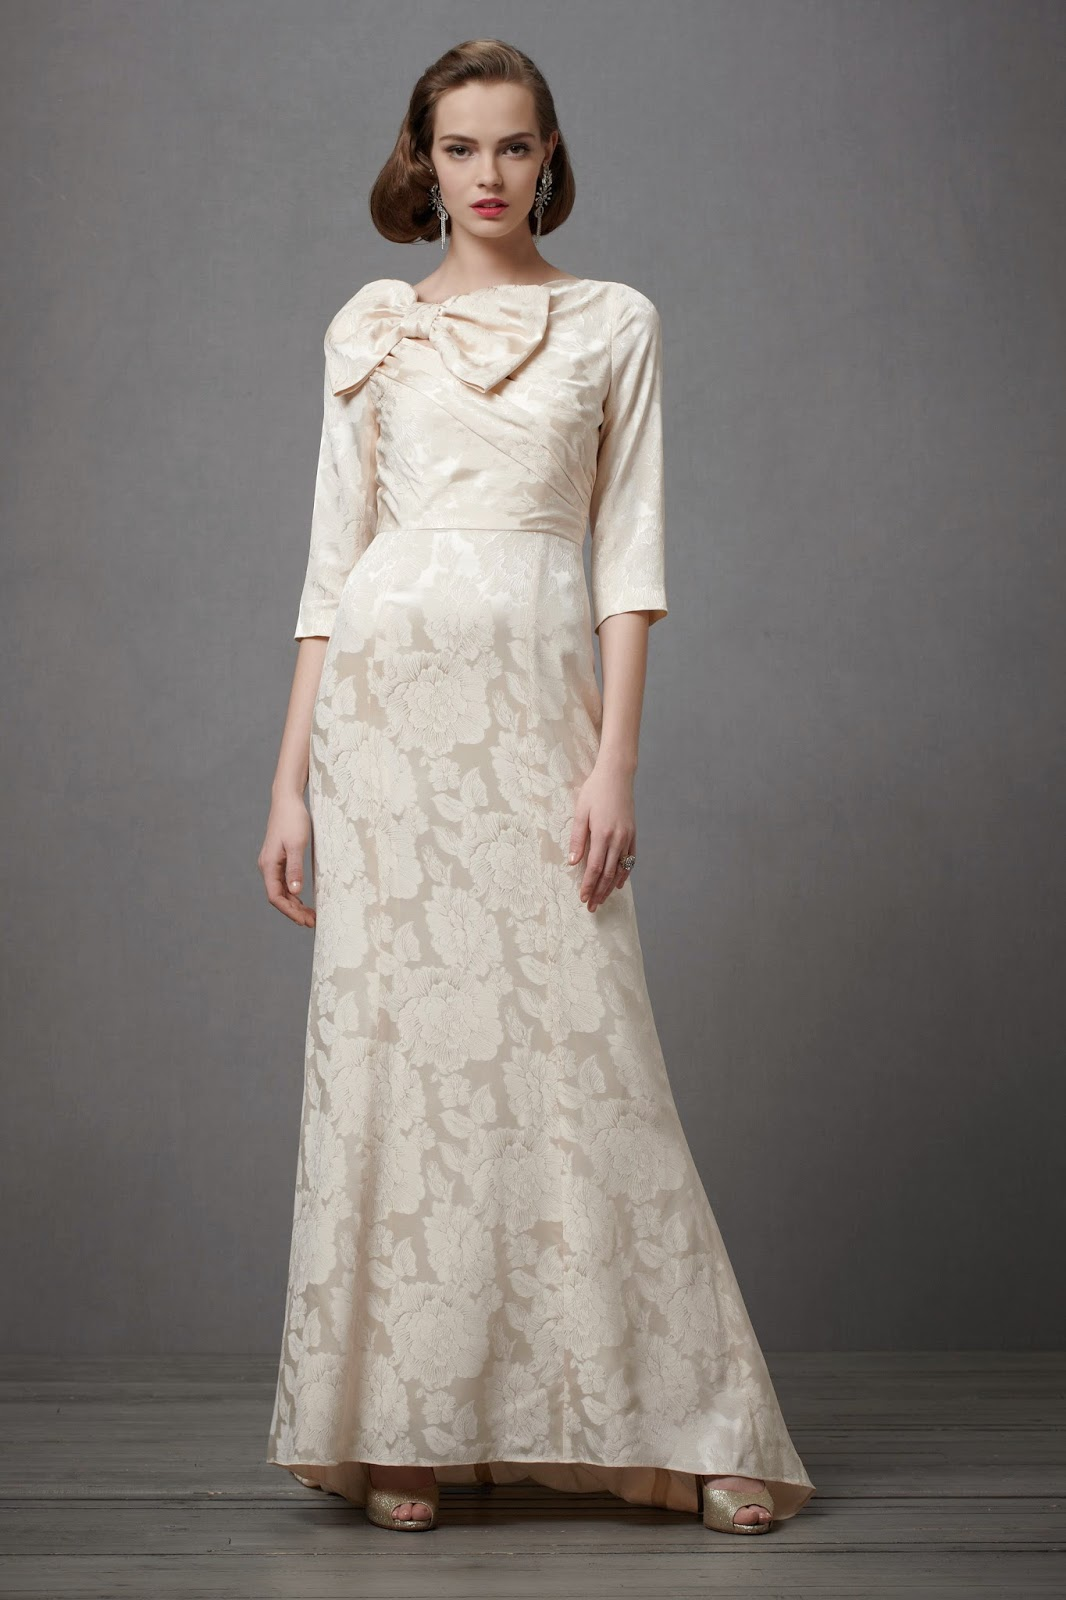 wedding dresses cold climates: Wedding Dresses For Second Marriages ...